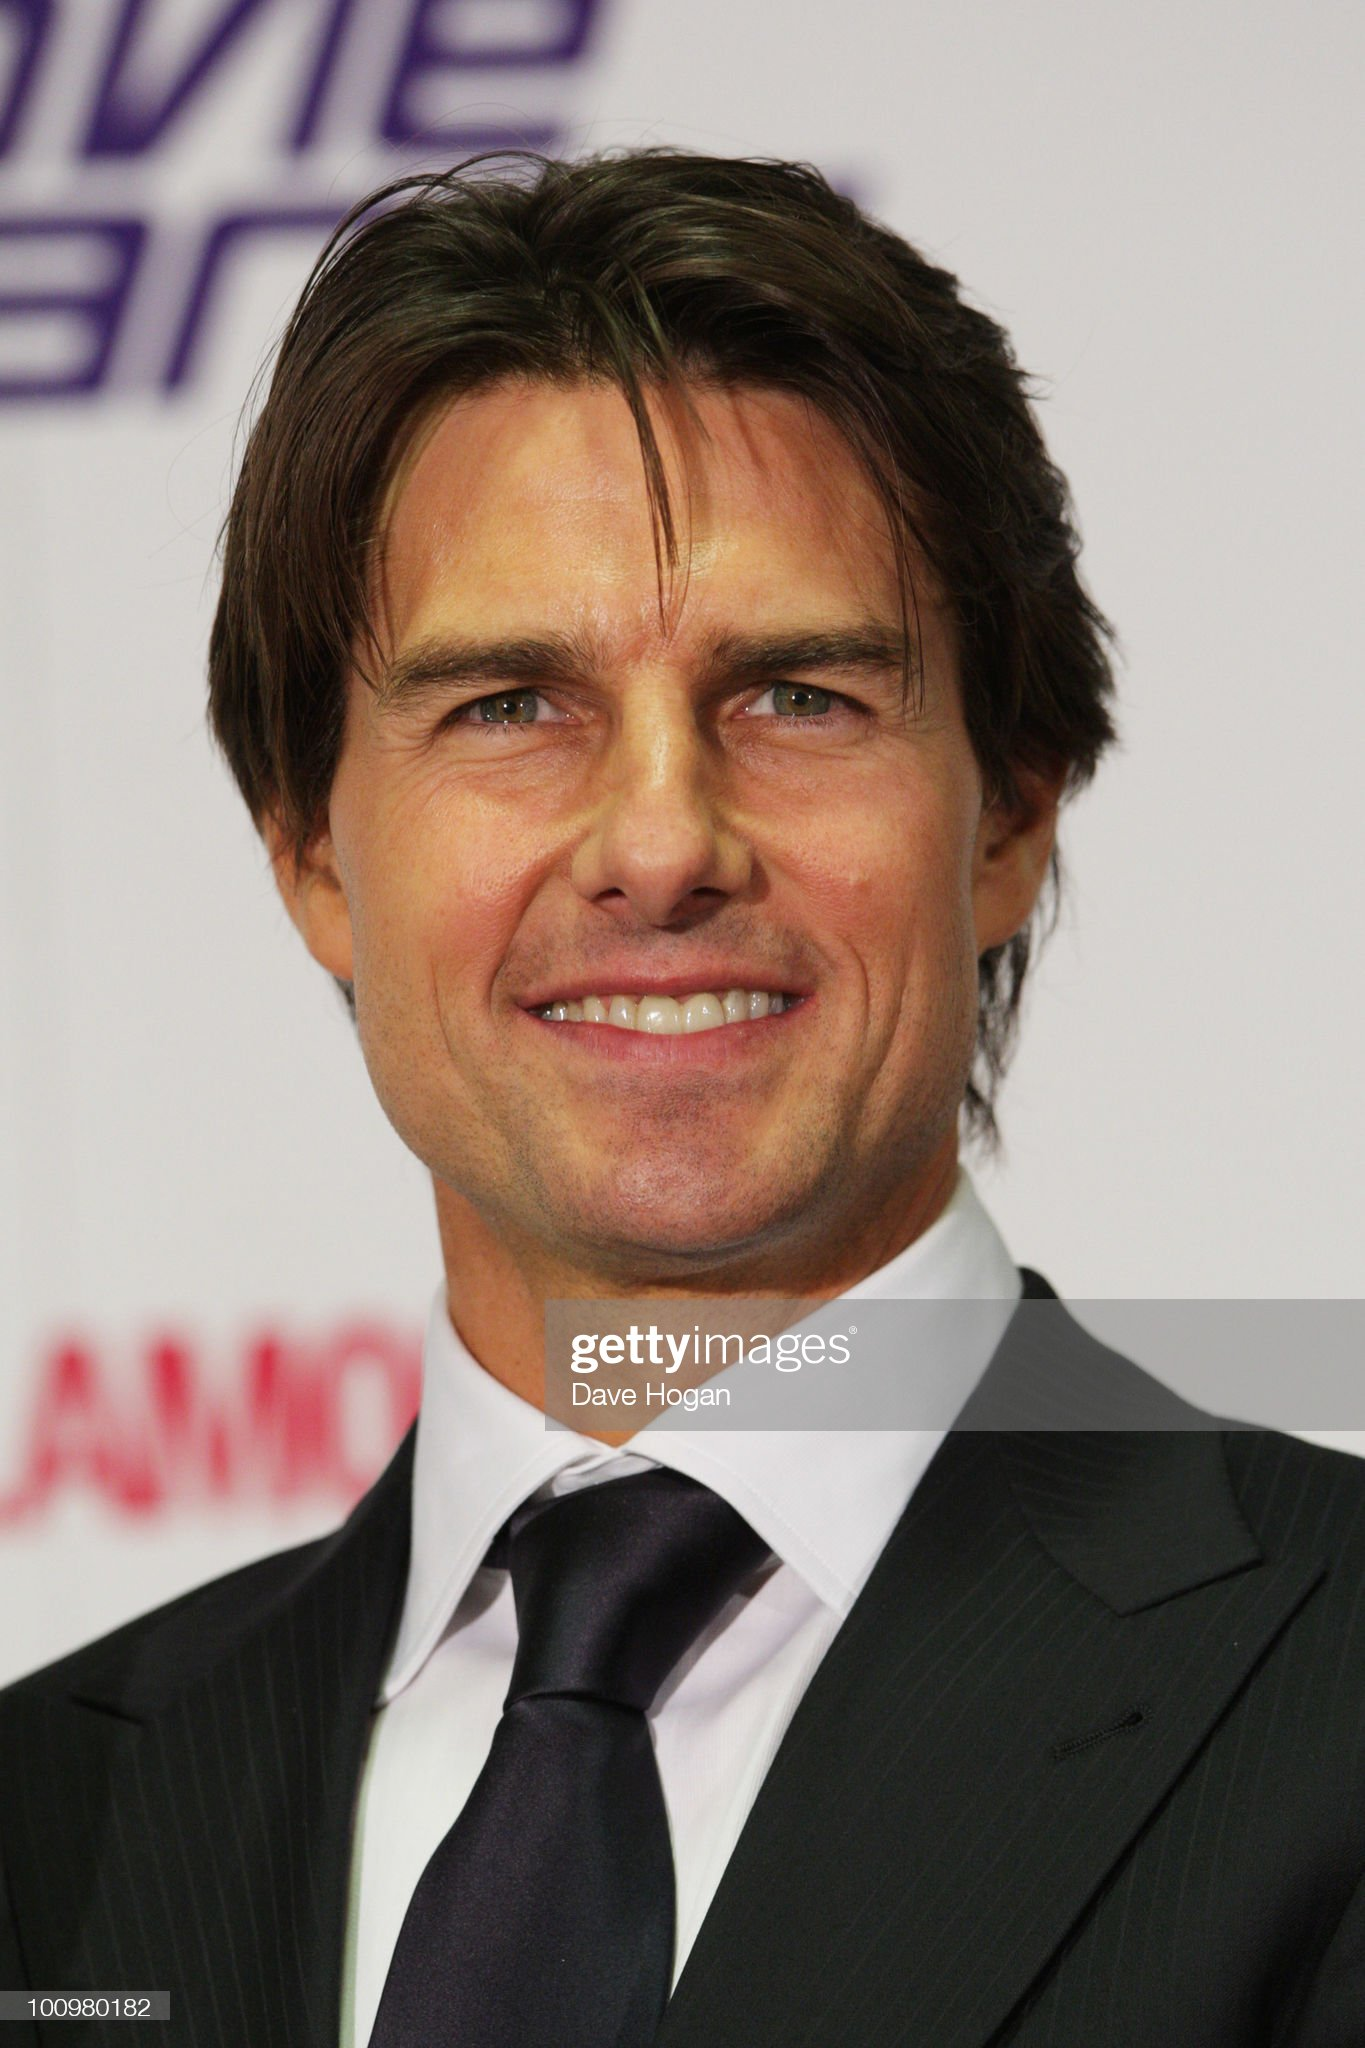 Tom Cruise (Galería de fotos) Tom-cruise-poses-in-the-winners-room-at-the-national-movie-awards-picture-id100980182?s=2048x2048